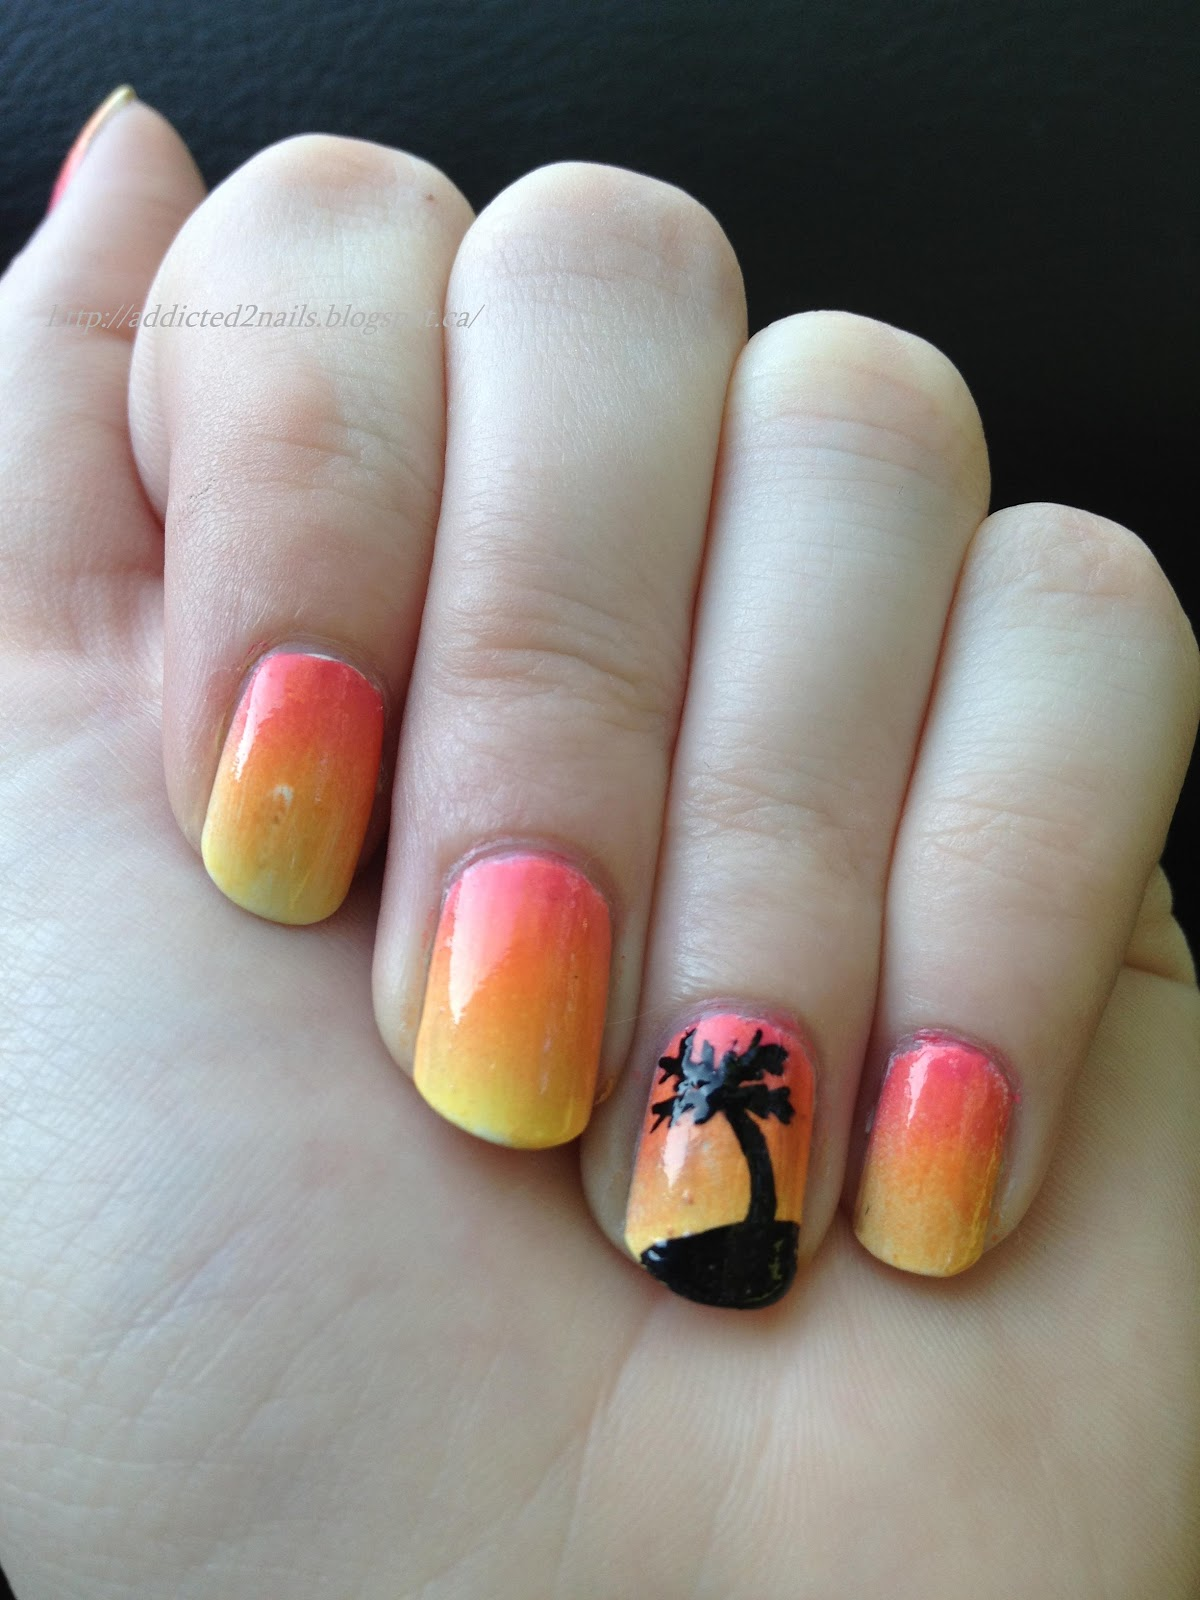 Only 45 More Days Till Hawaii I M Dying Here Haha Hawaiian Themed Nail Art Will Hold Me Over Until We Leave Used Sally Hansen S Mellow Yellow And